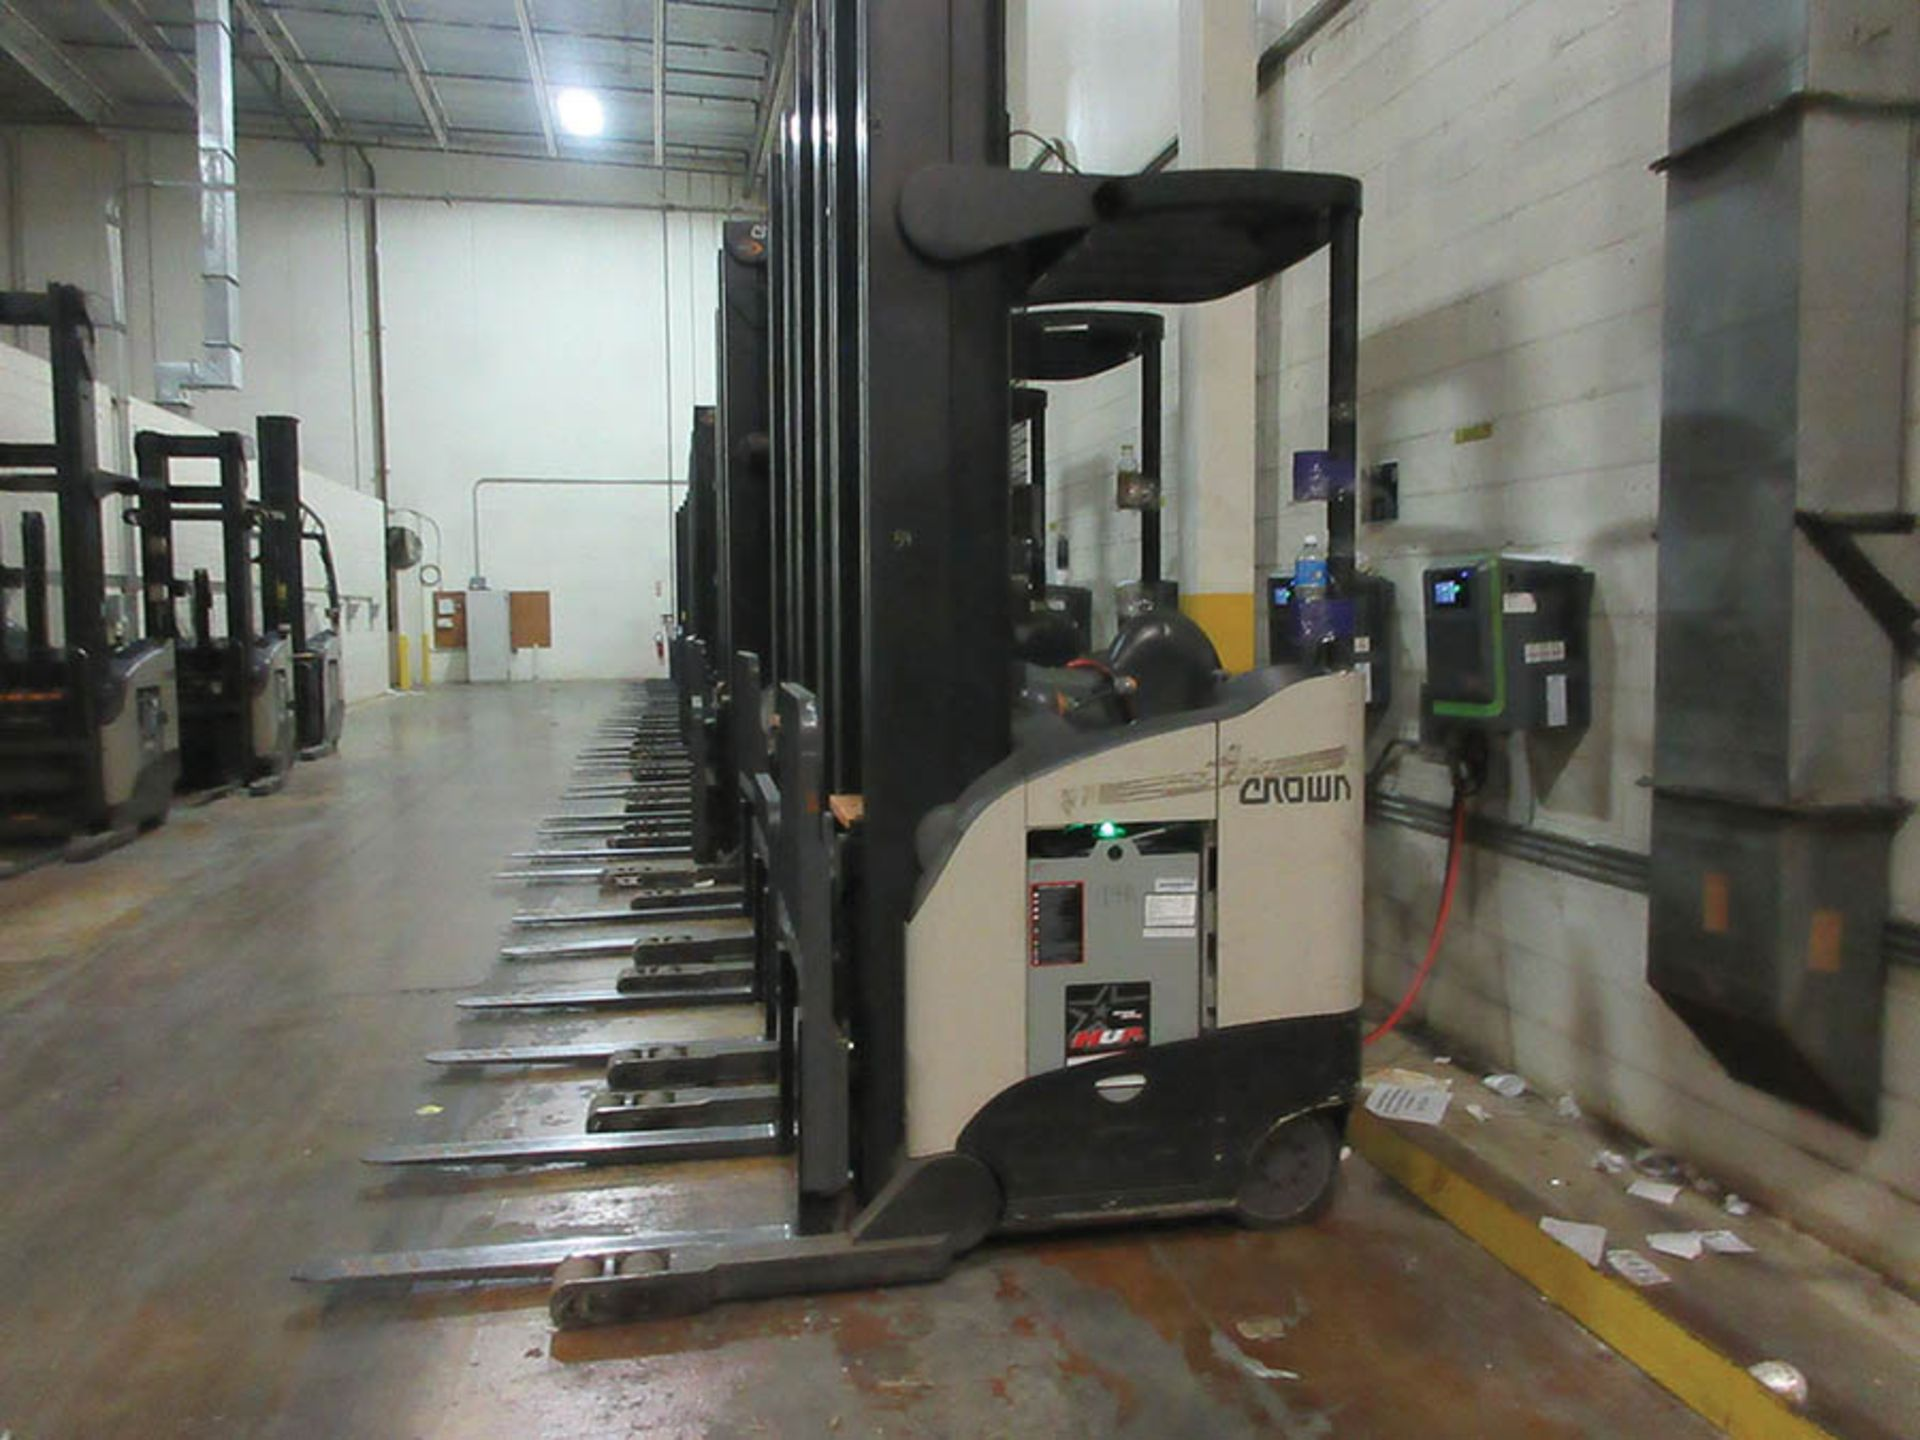 Lot 59 - 2016 CROWN REACH TRUCK, 4,500 LB. CAP., MODEL: RR5725-45, 36V., 140'' MAST COLLAPSED HEIGHT, 321''